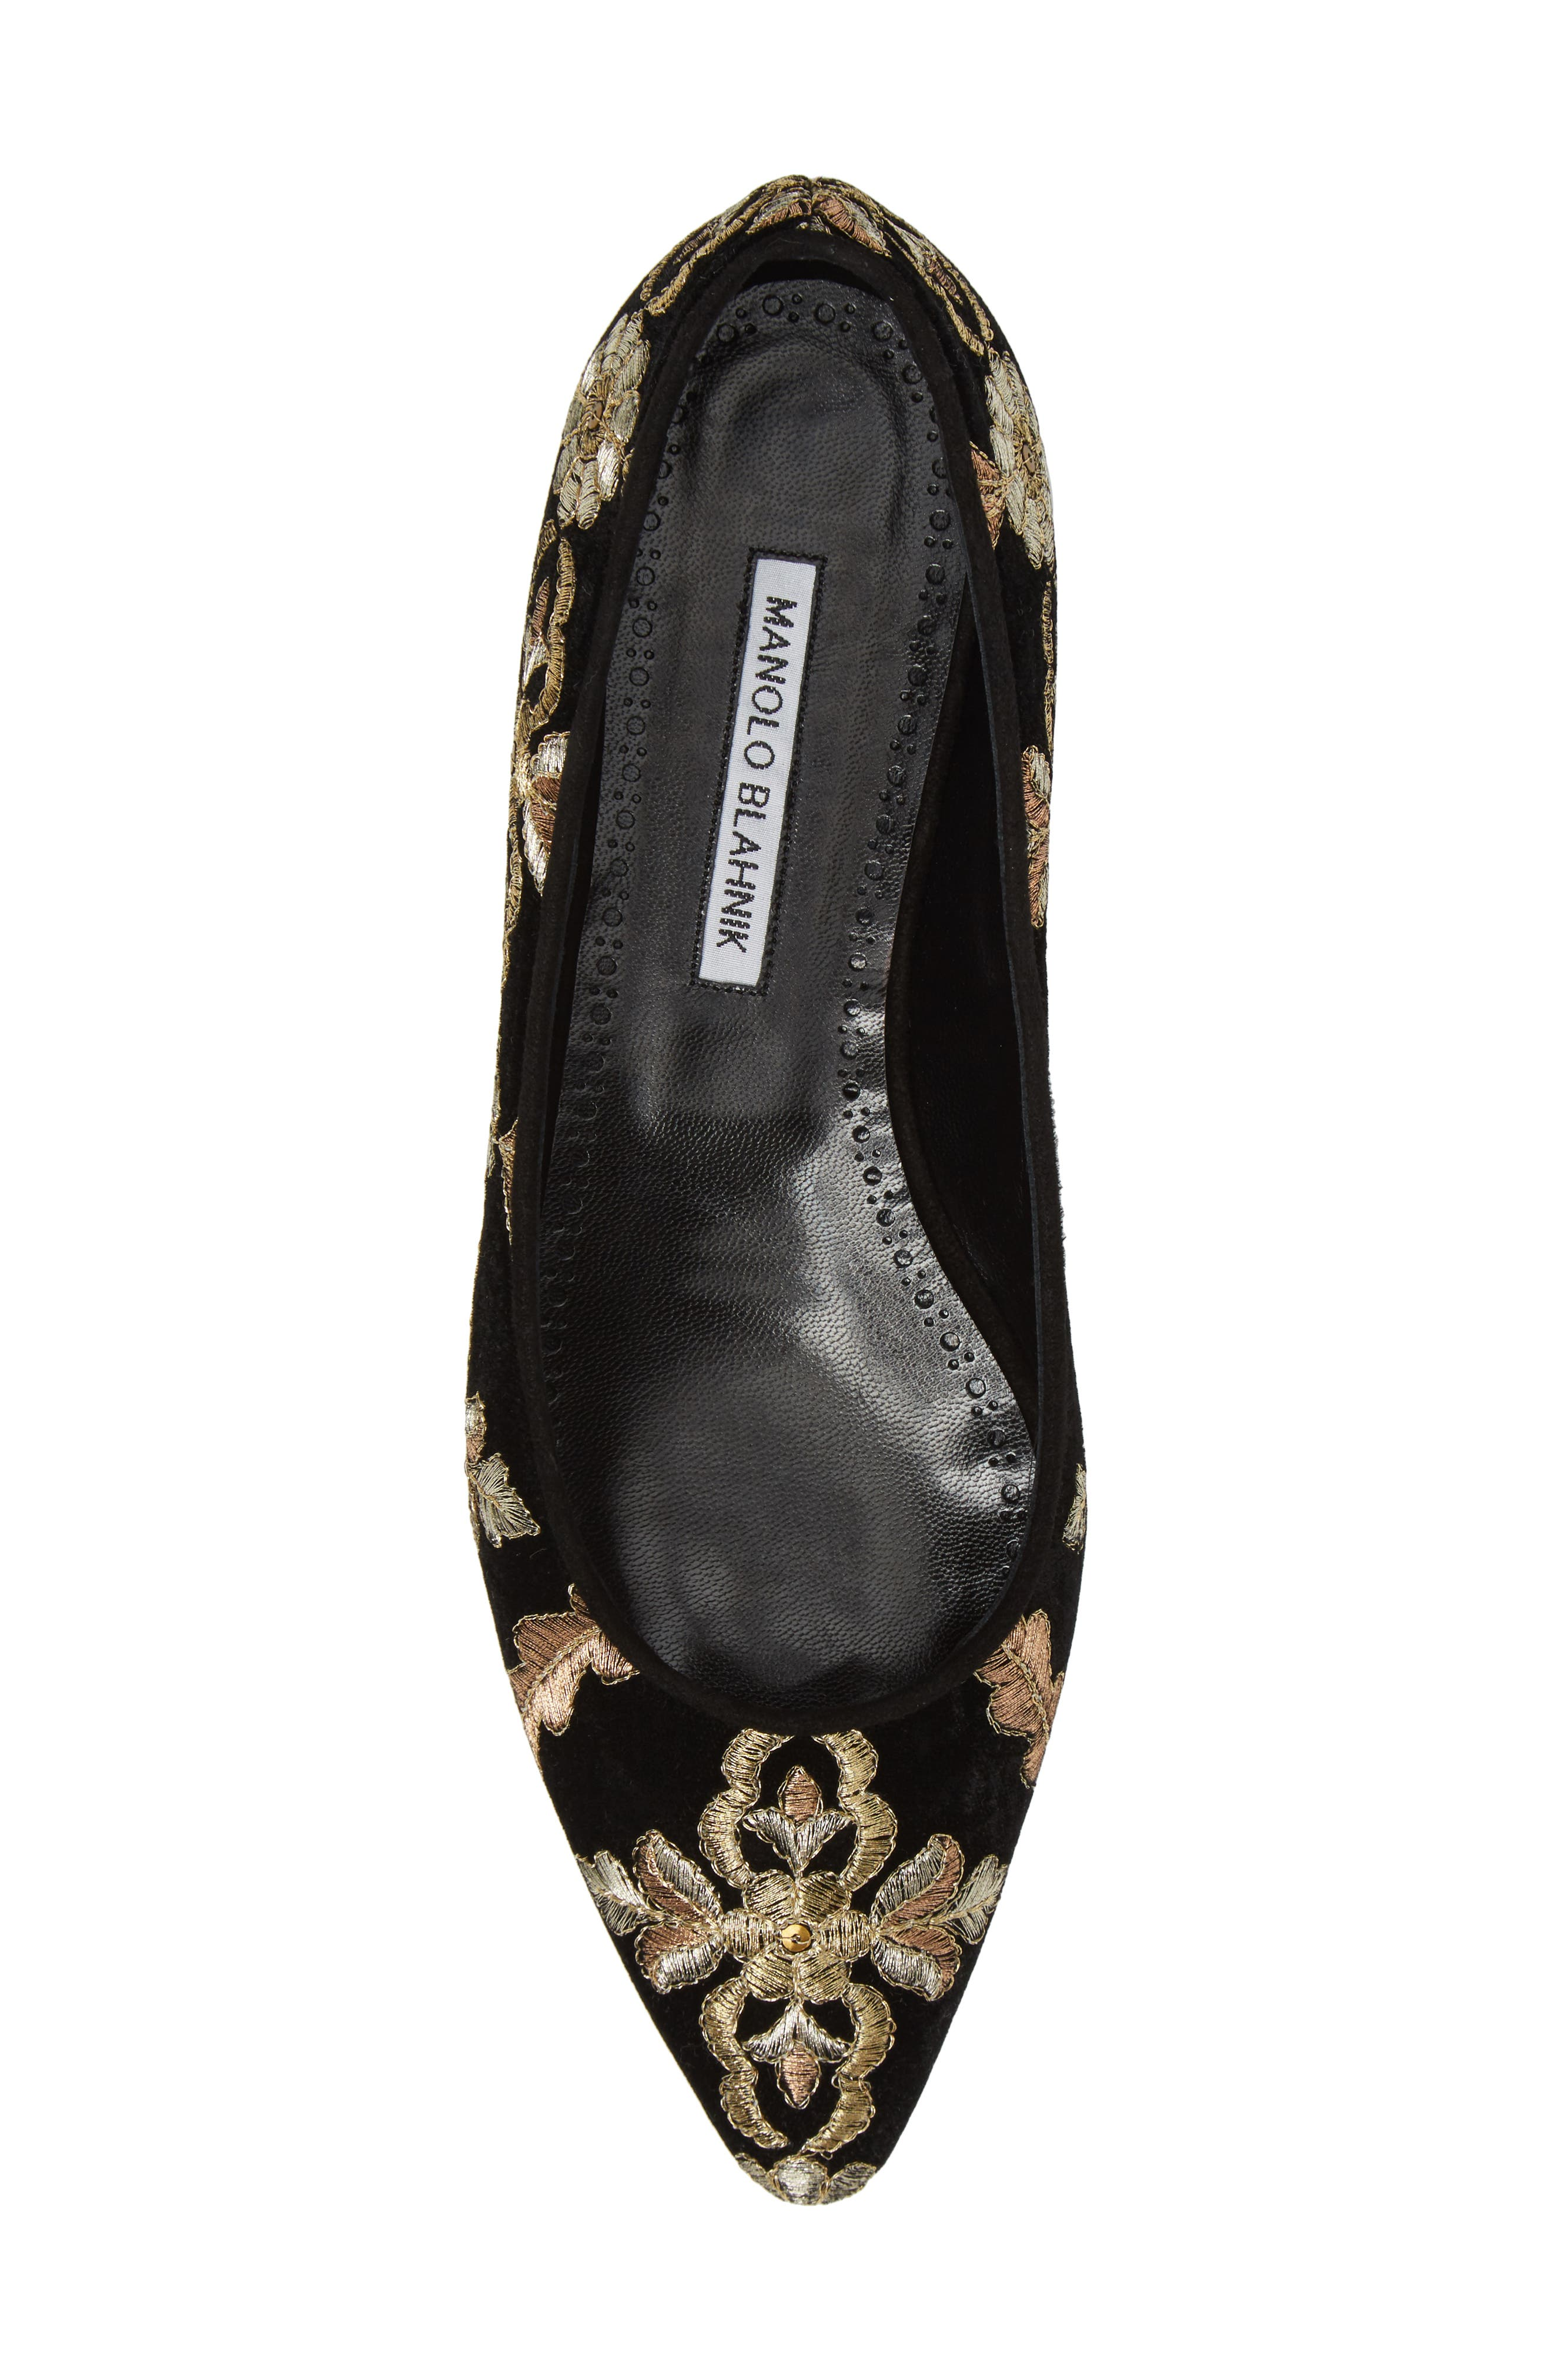 Tittermo Floral Embroidered Ballet Flat,                             Alternate thumbnail 5, color,                             001